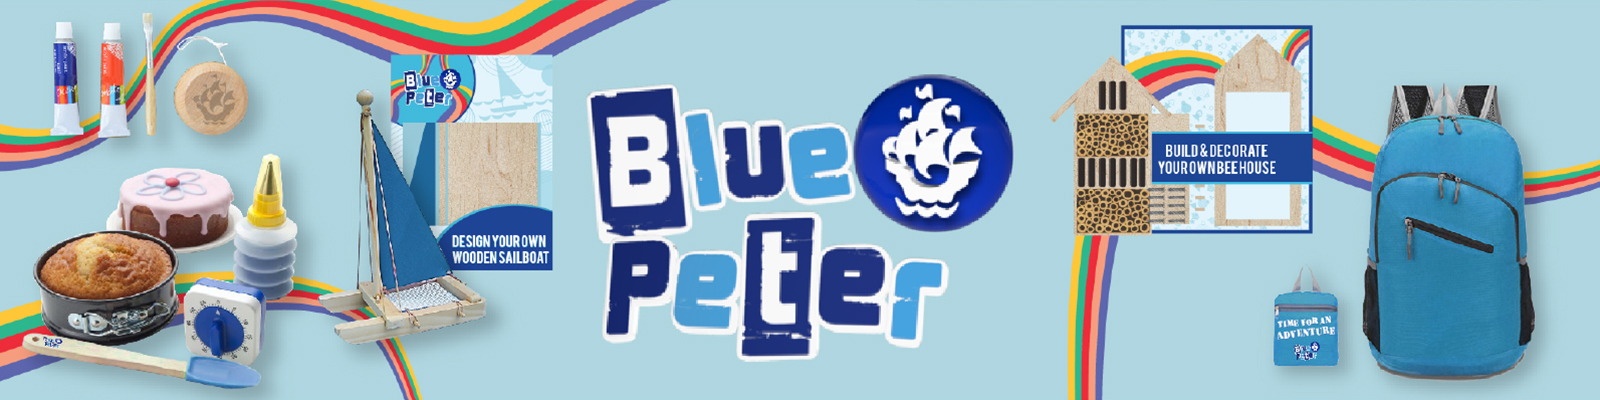 Blue Peter Kids